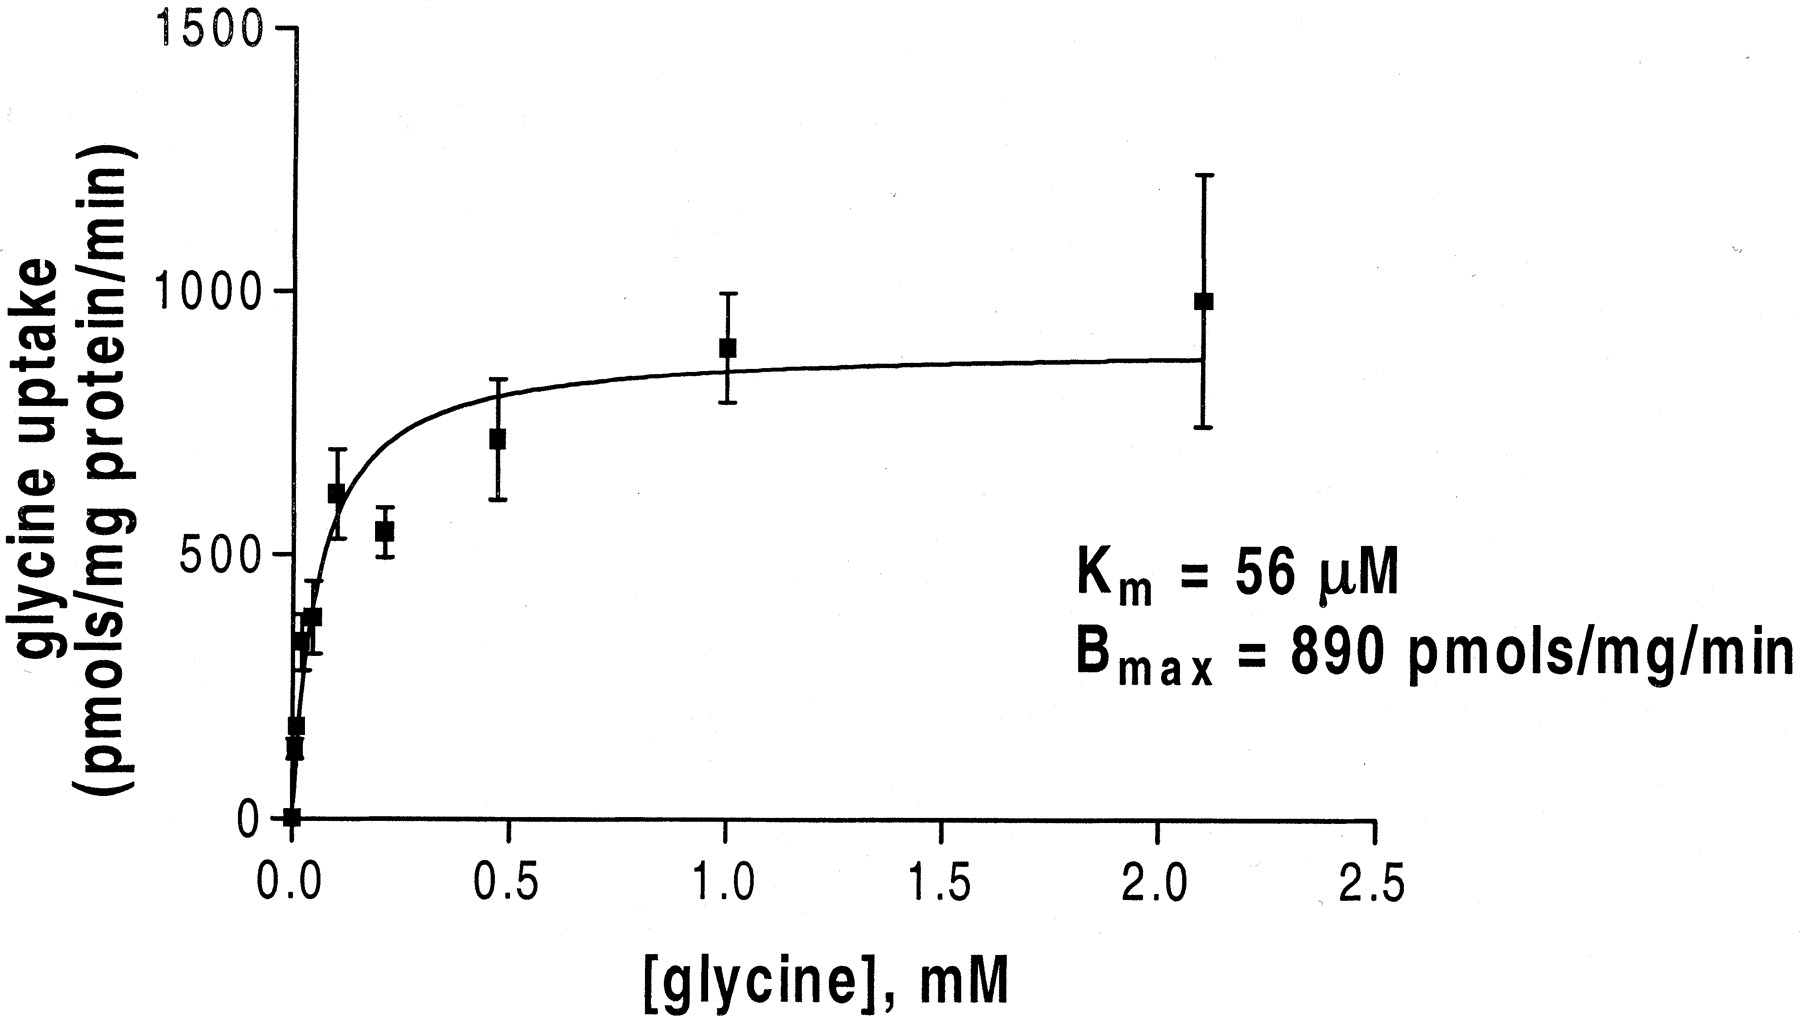 Alx A Potent Selective Inhibitor Of The Hglyt1